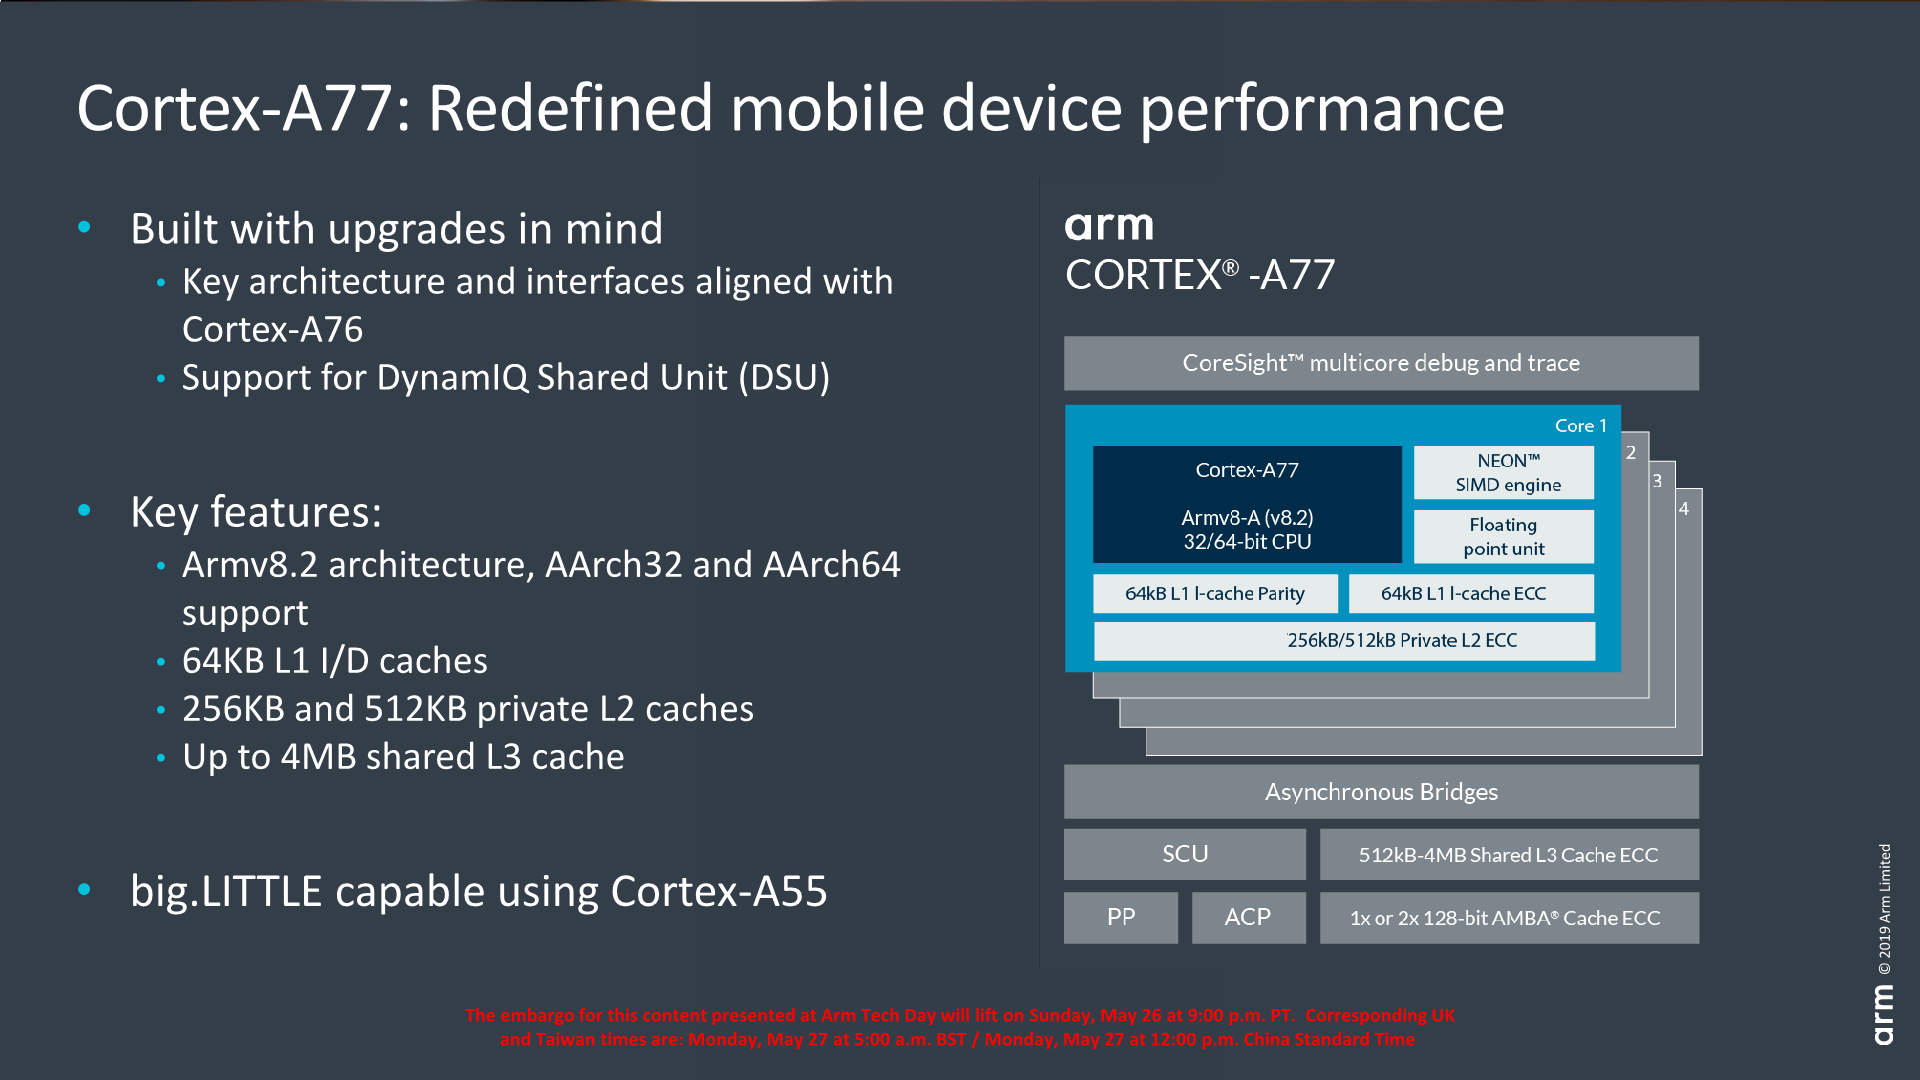 Arm's latest mobile processor boasts high-end gaming performance, enhanced AI